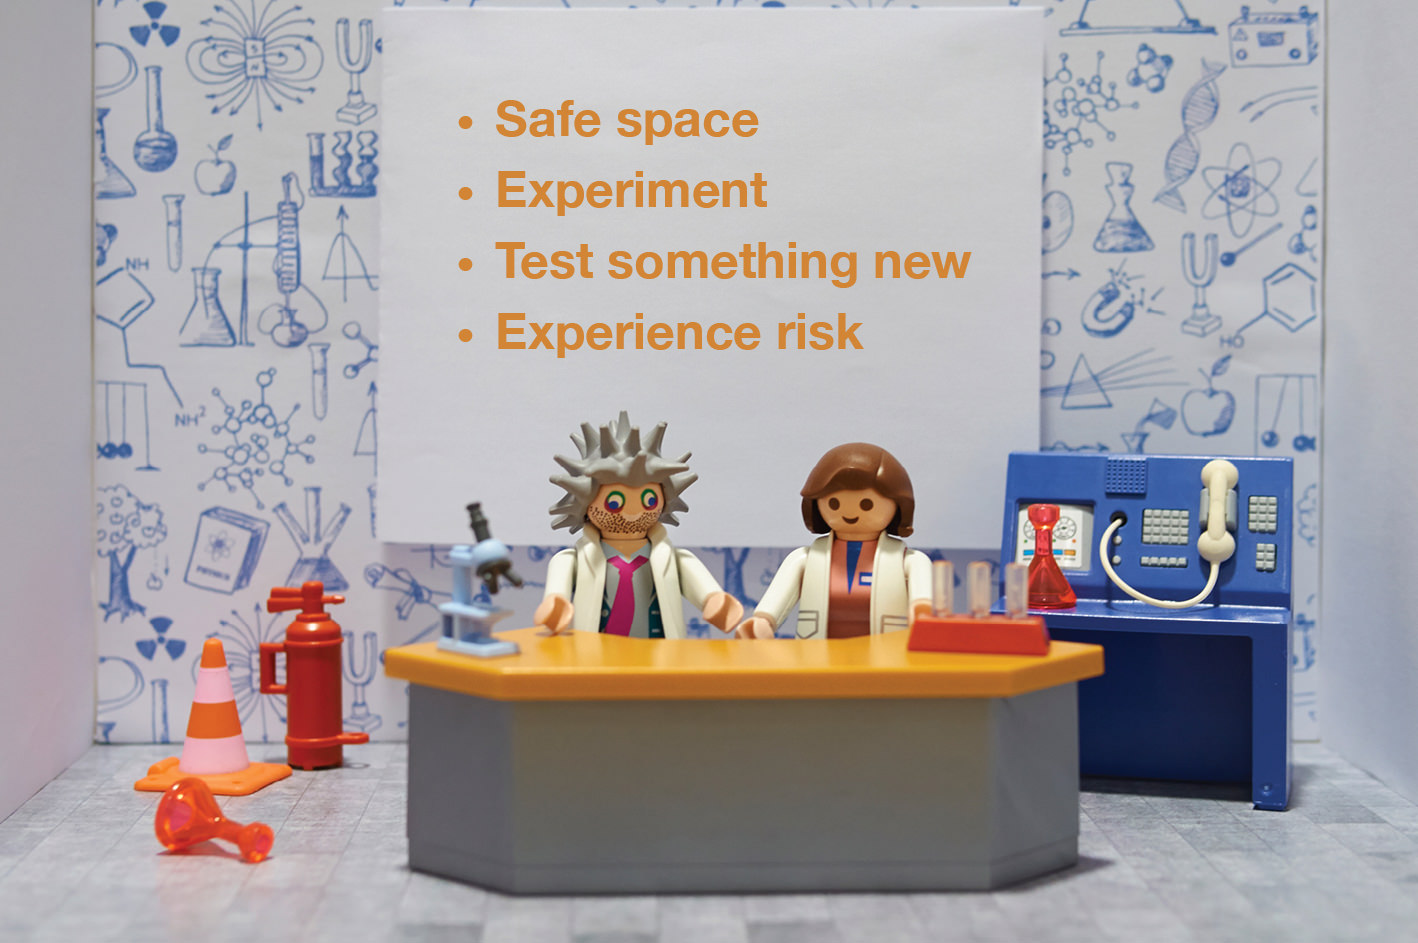 Safe space, Experiment, Test something new, Experience risk